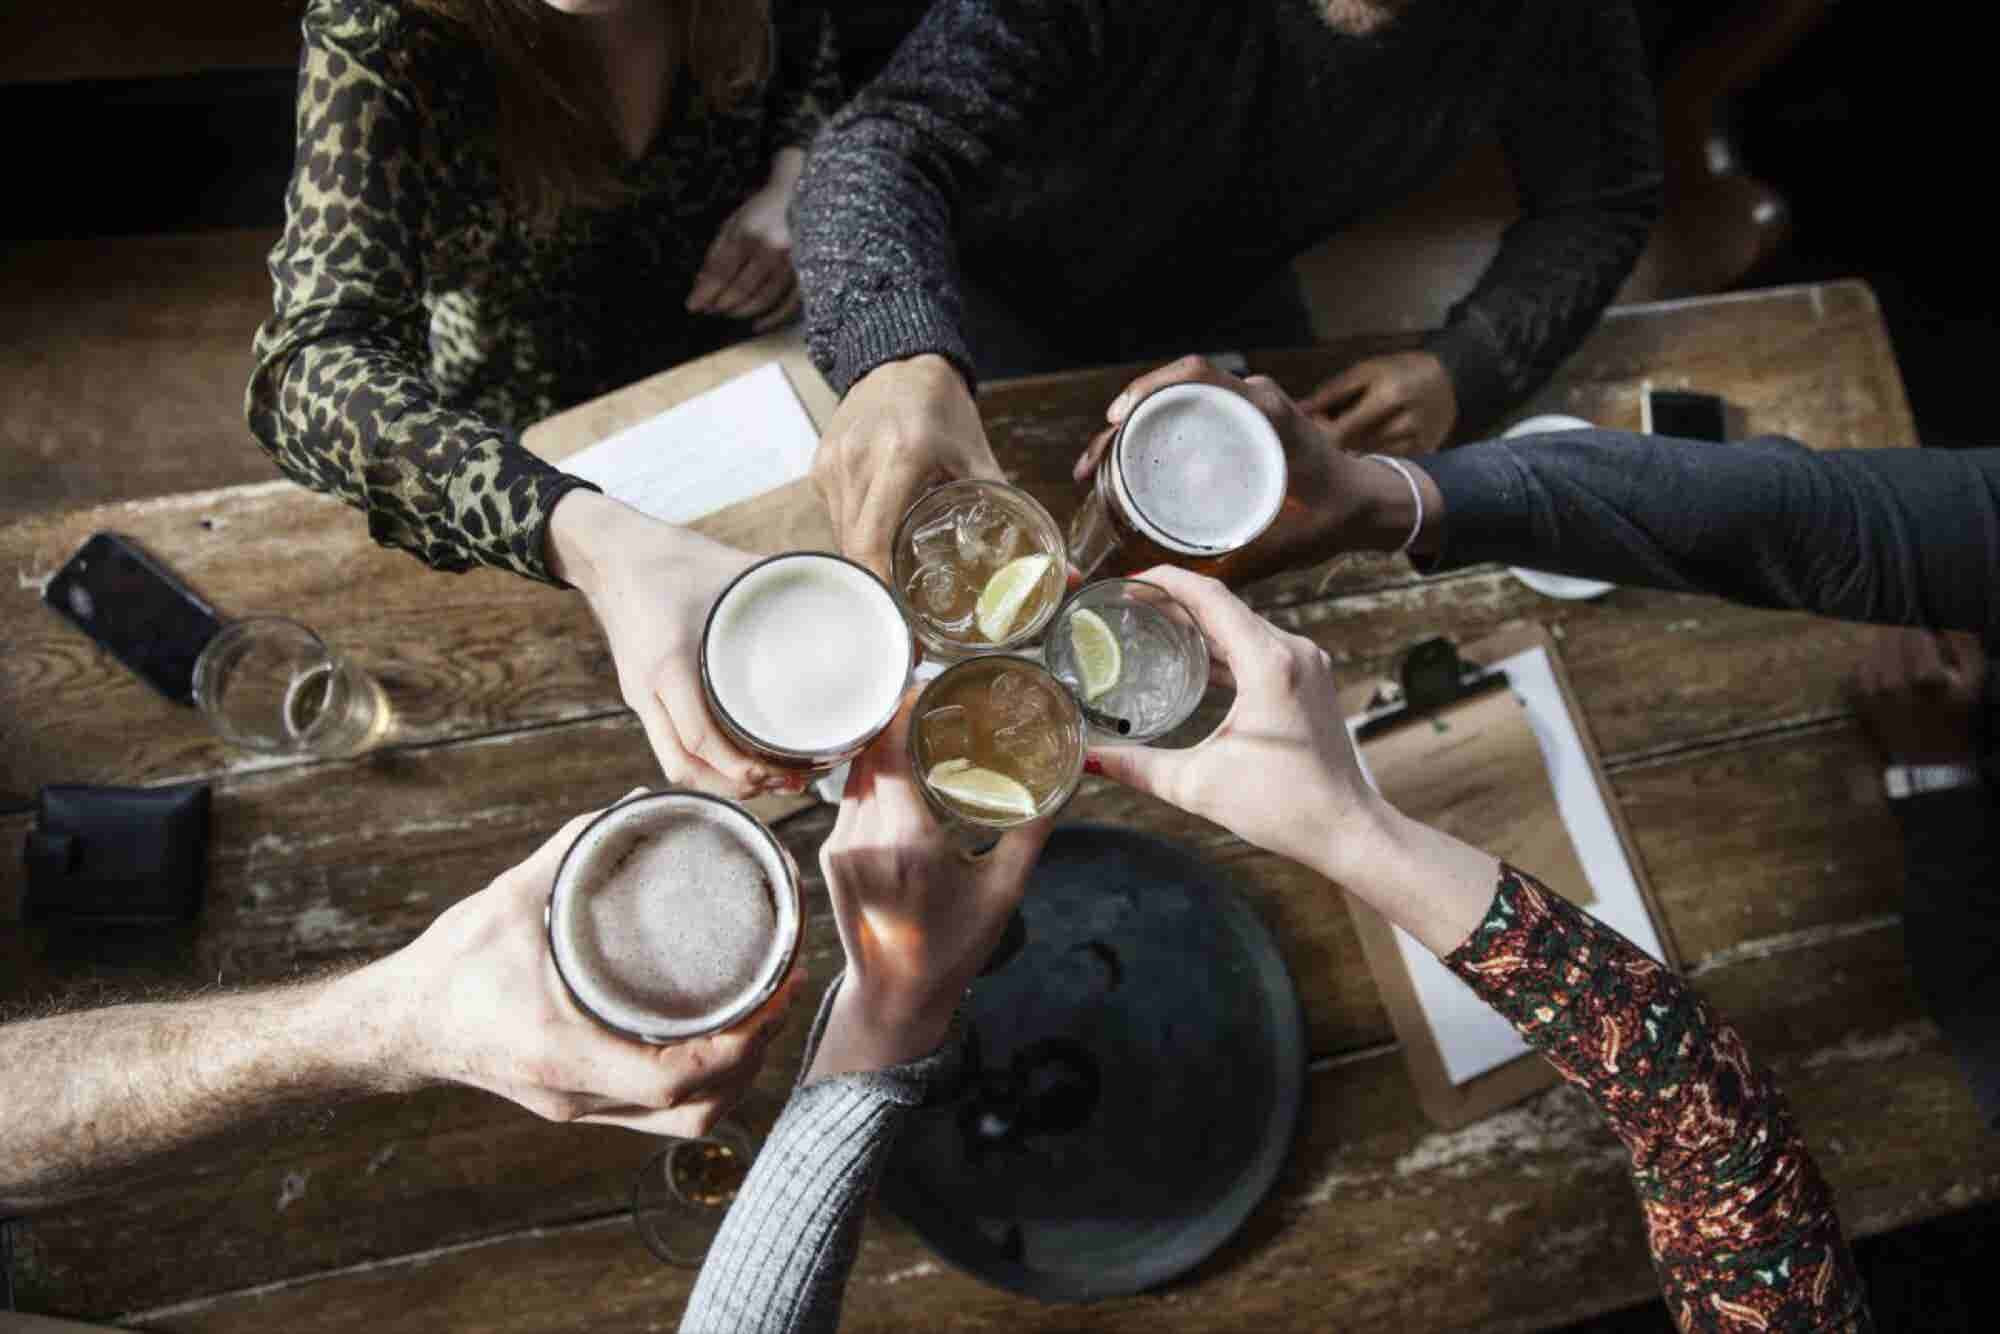 11 Ways Drinking Alcohol Can Make You Smarter, Healthier and More Creative